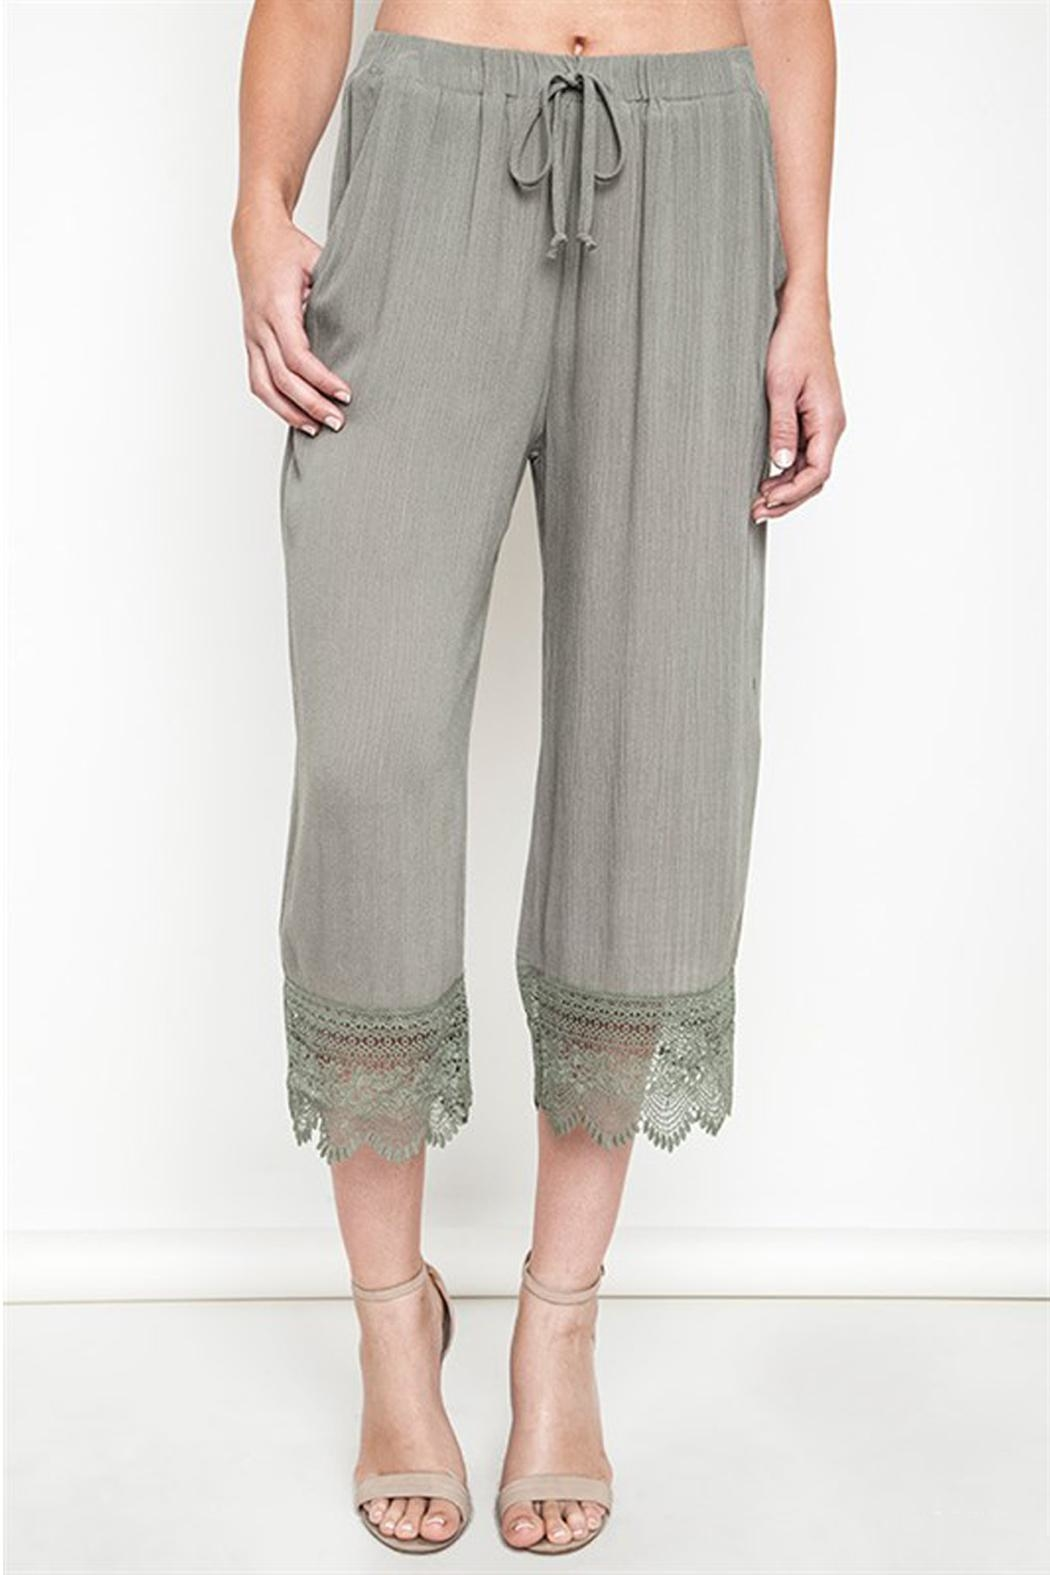 Umgee USA Lace Capri Pants - Main Image